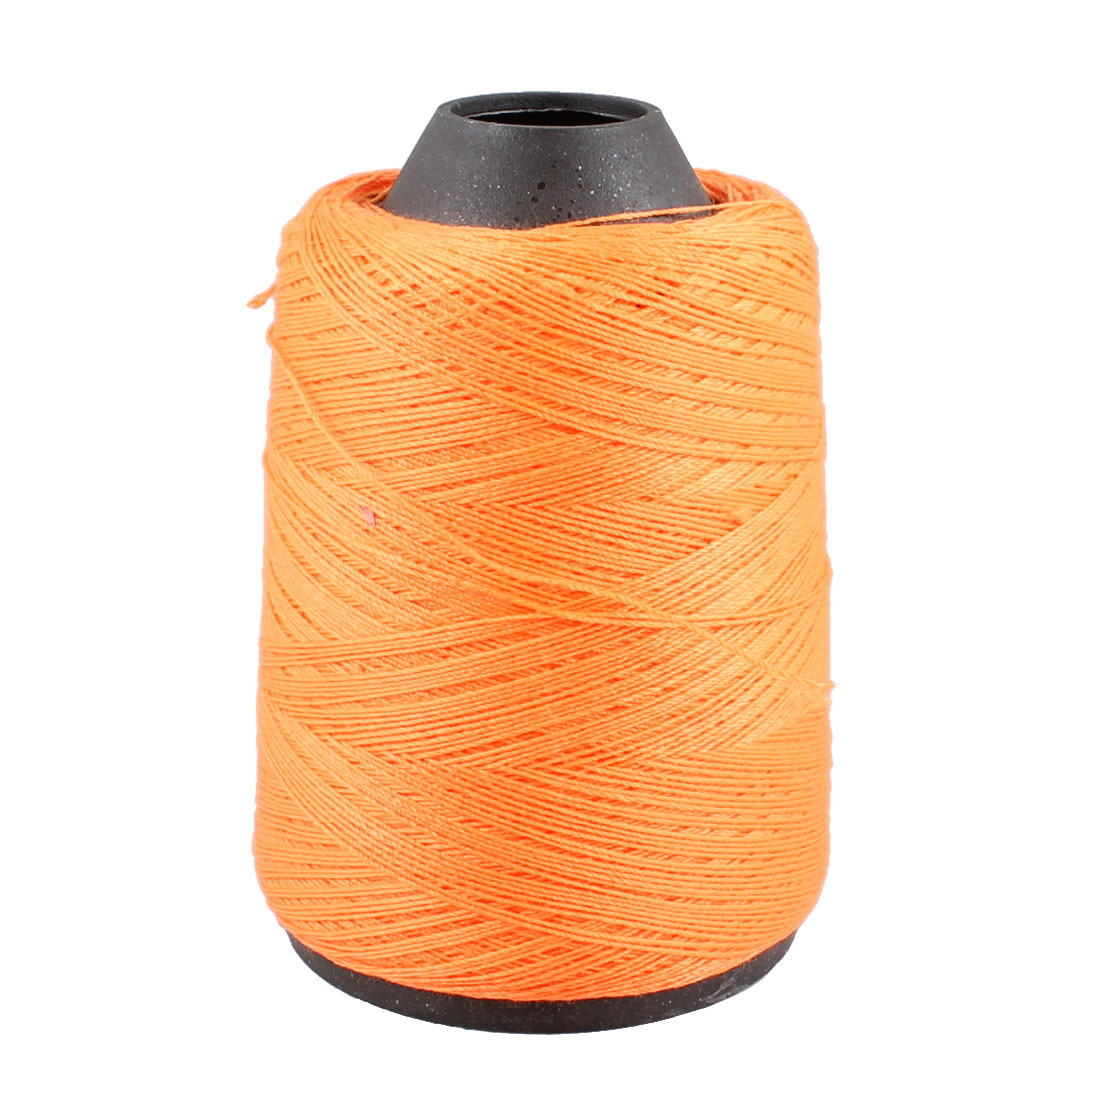 Tapered Plastic Spool Orange String Hand Machine Embroidery Sewing Thread